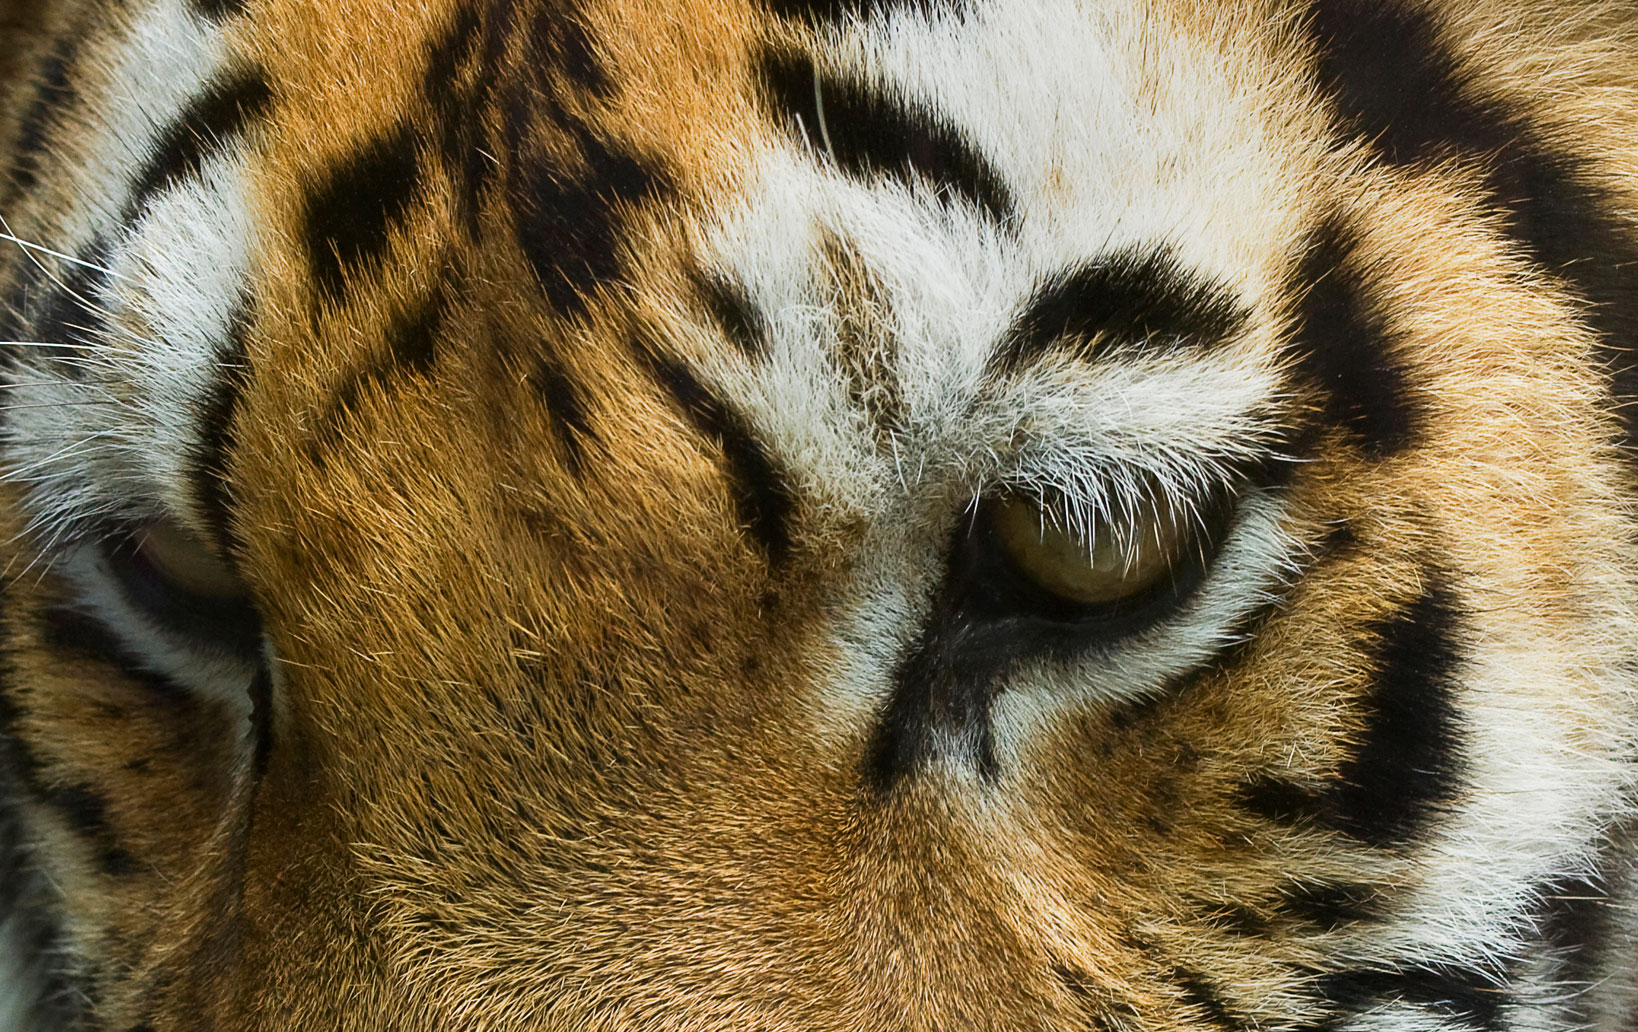 All World's Tigers Extinct in 15-20 Years Without Better Conservation Efforts